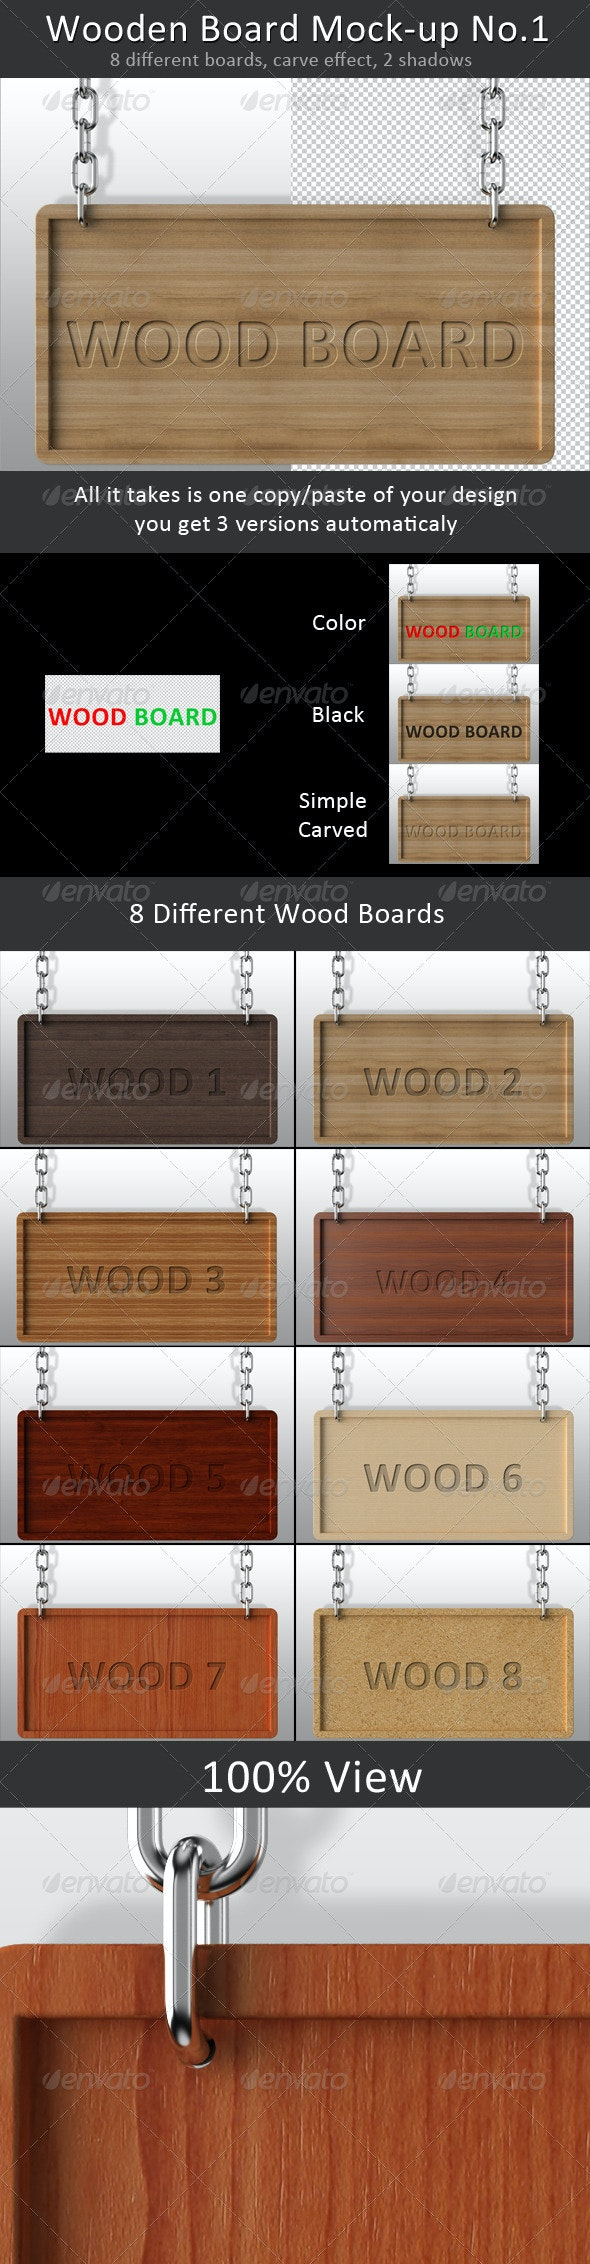 Wooden Board Mock-up No.1 - Miscellaneous Product Mock-Ups